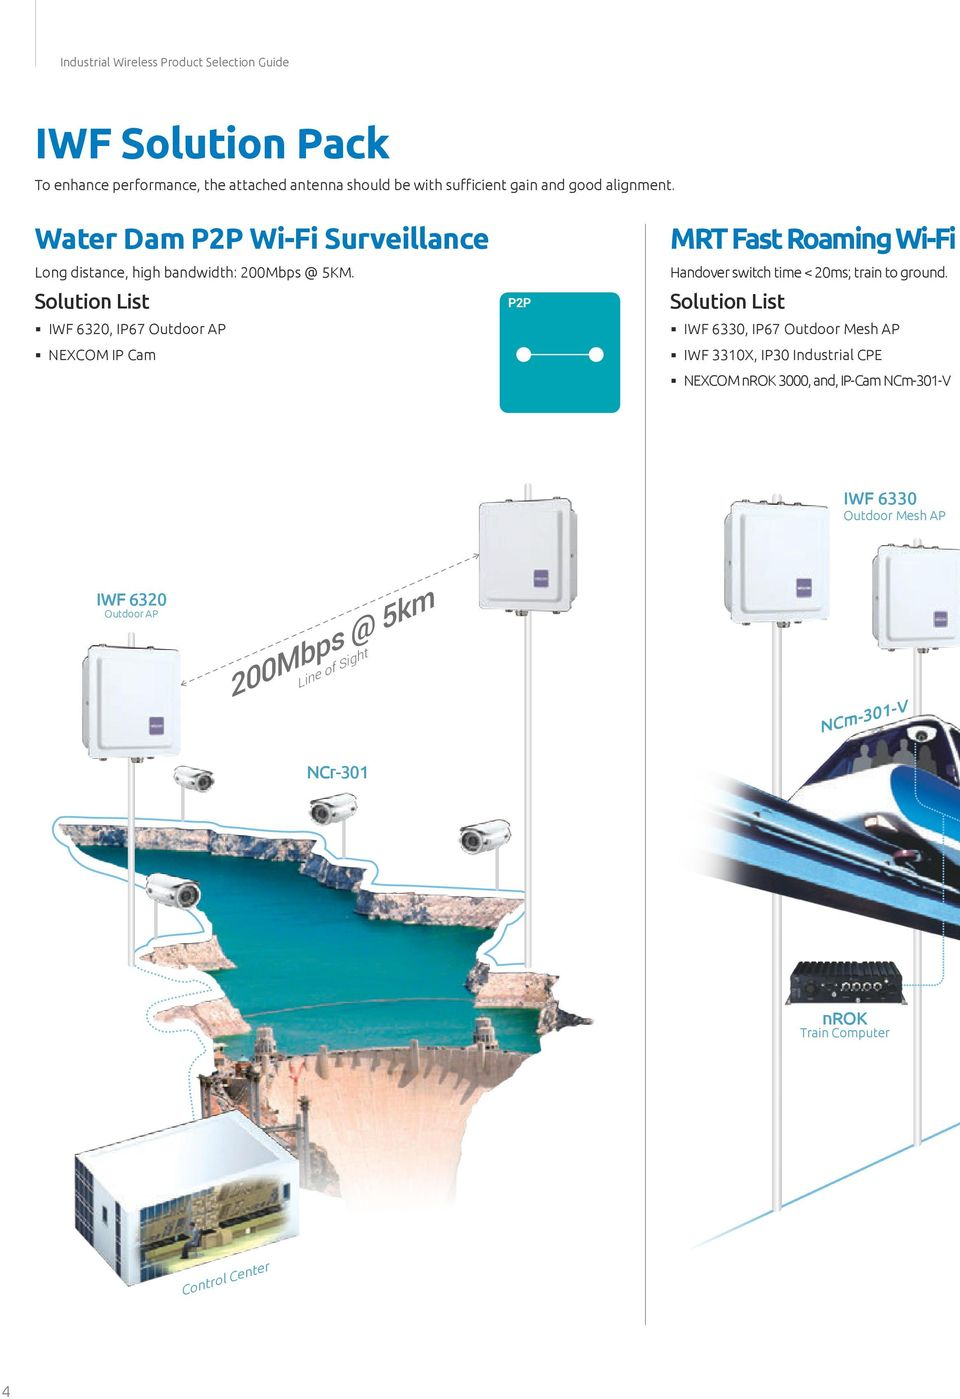 IWF 6320, IP67 Outdoor AP NEXCOM IP Cam P2P MRT Fast Roaming Wi-Fi Handover switch time < 20ms; train to ground.